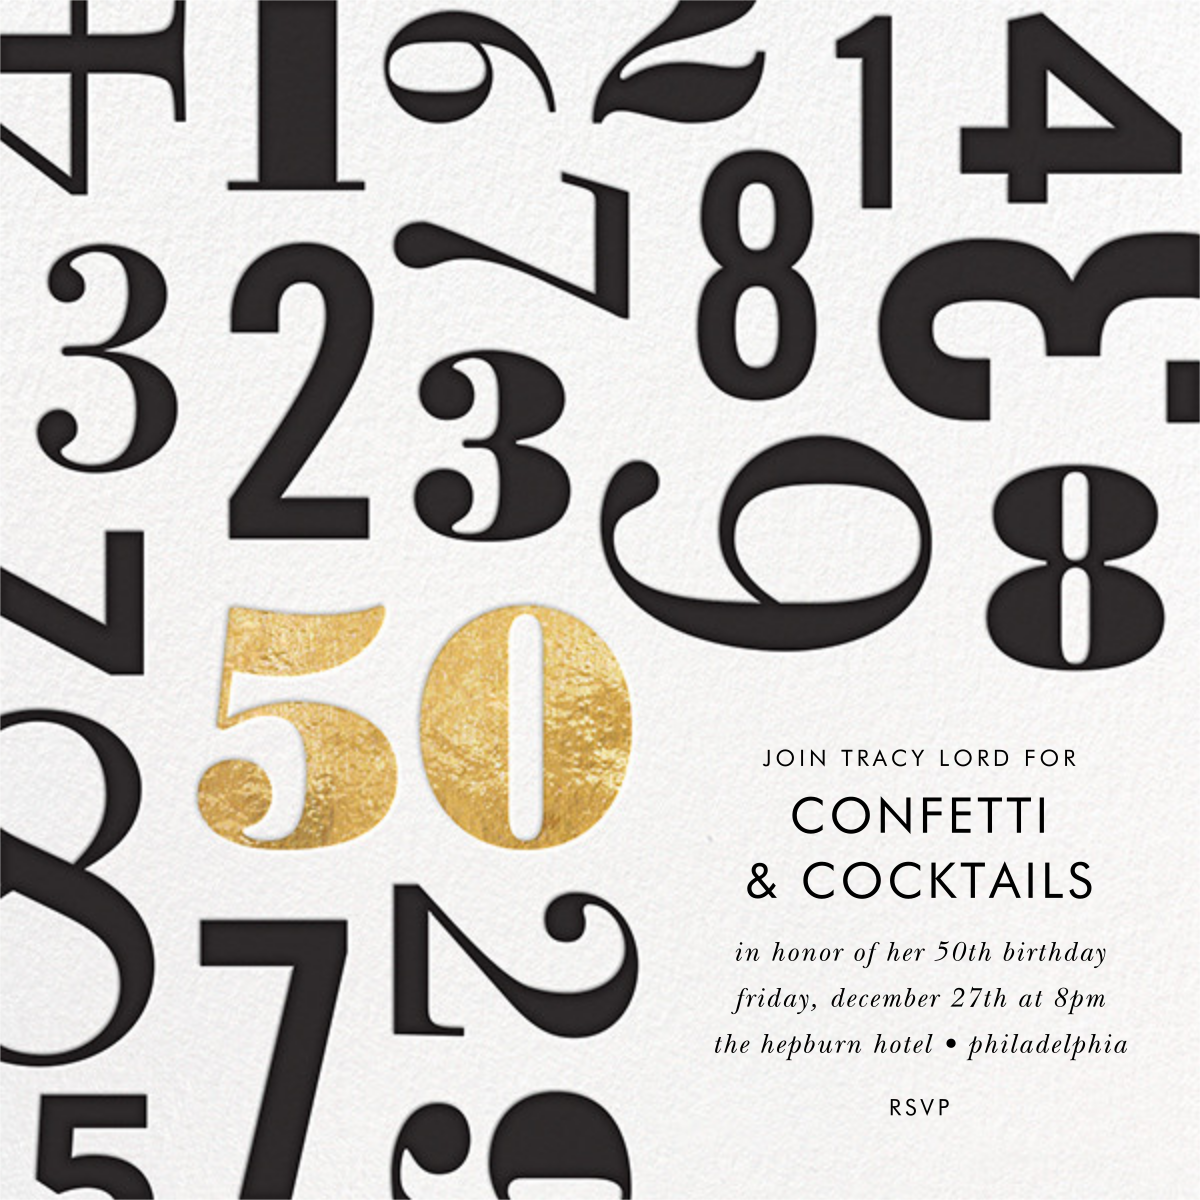 Lucky Number - Fifty - kate spade new york - 50th birthday invitations